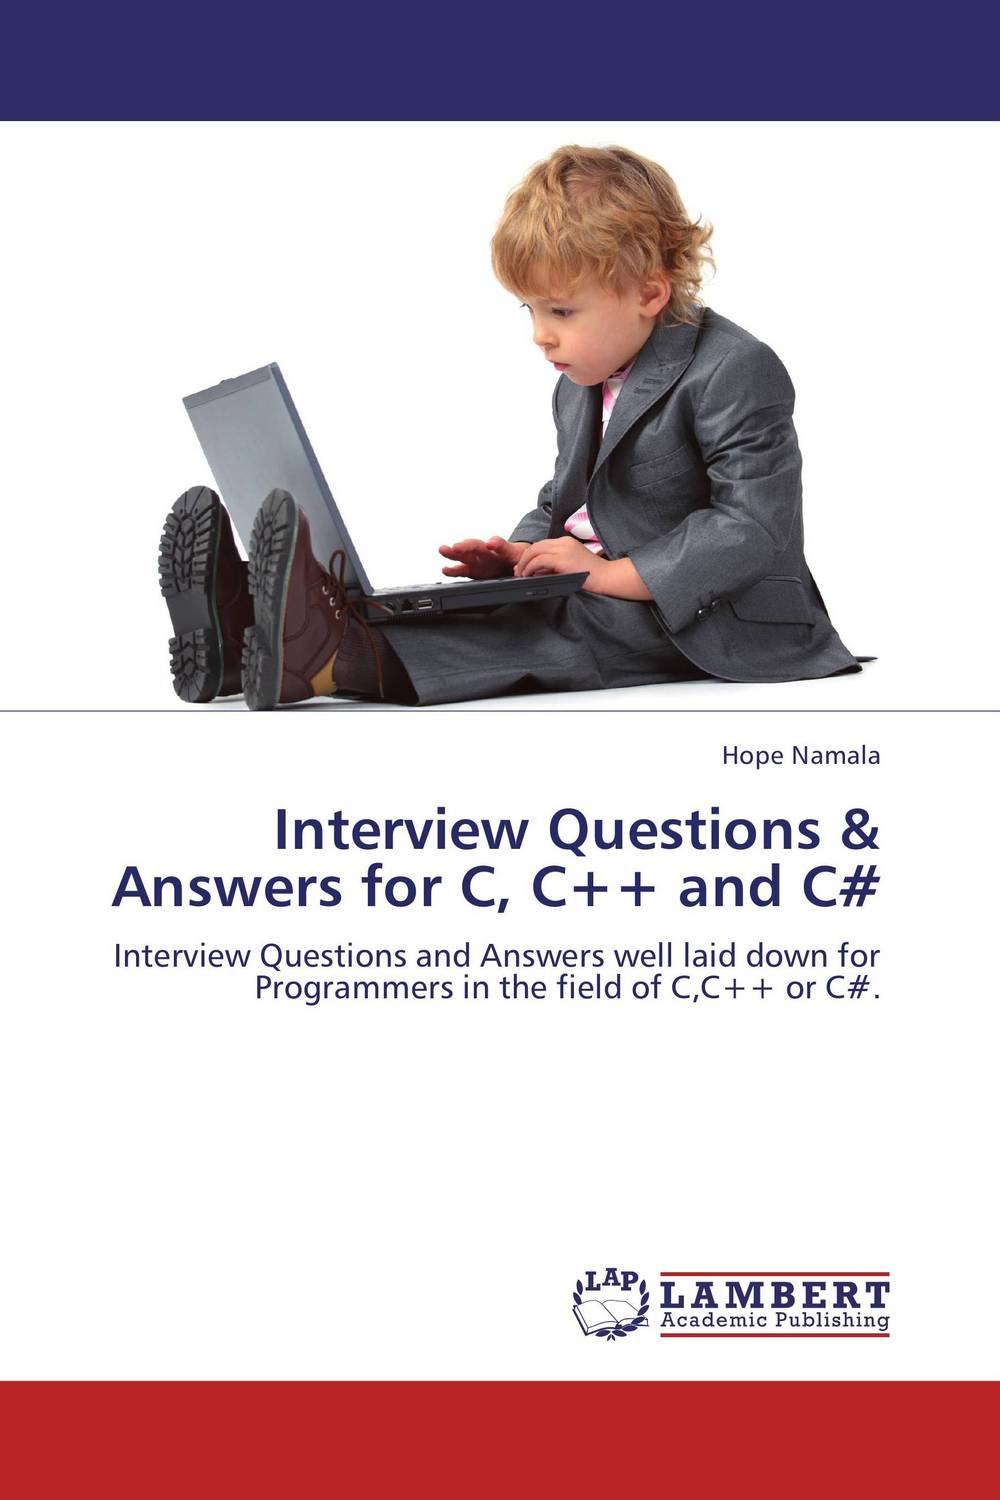 Interview Questions & Answers for C, C++ and C#